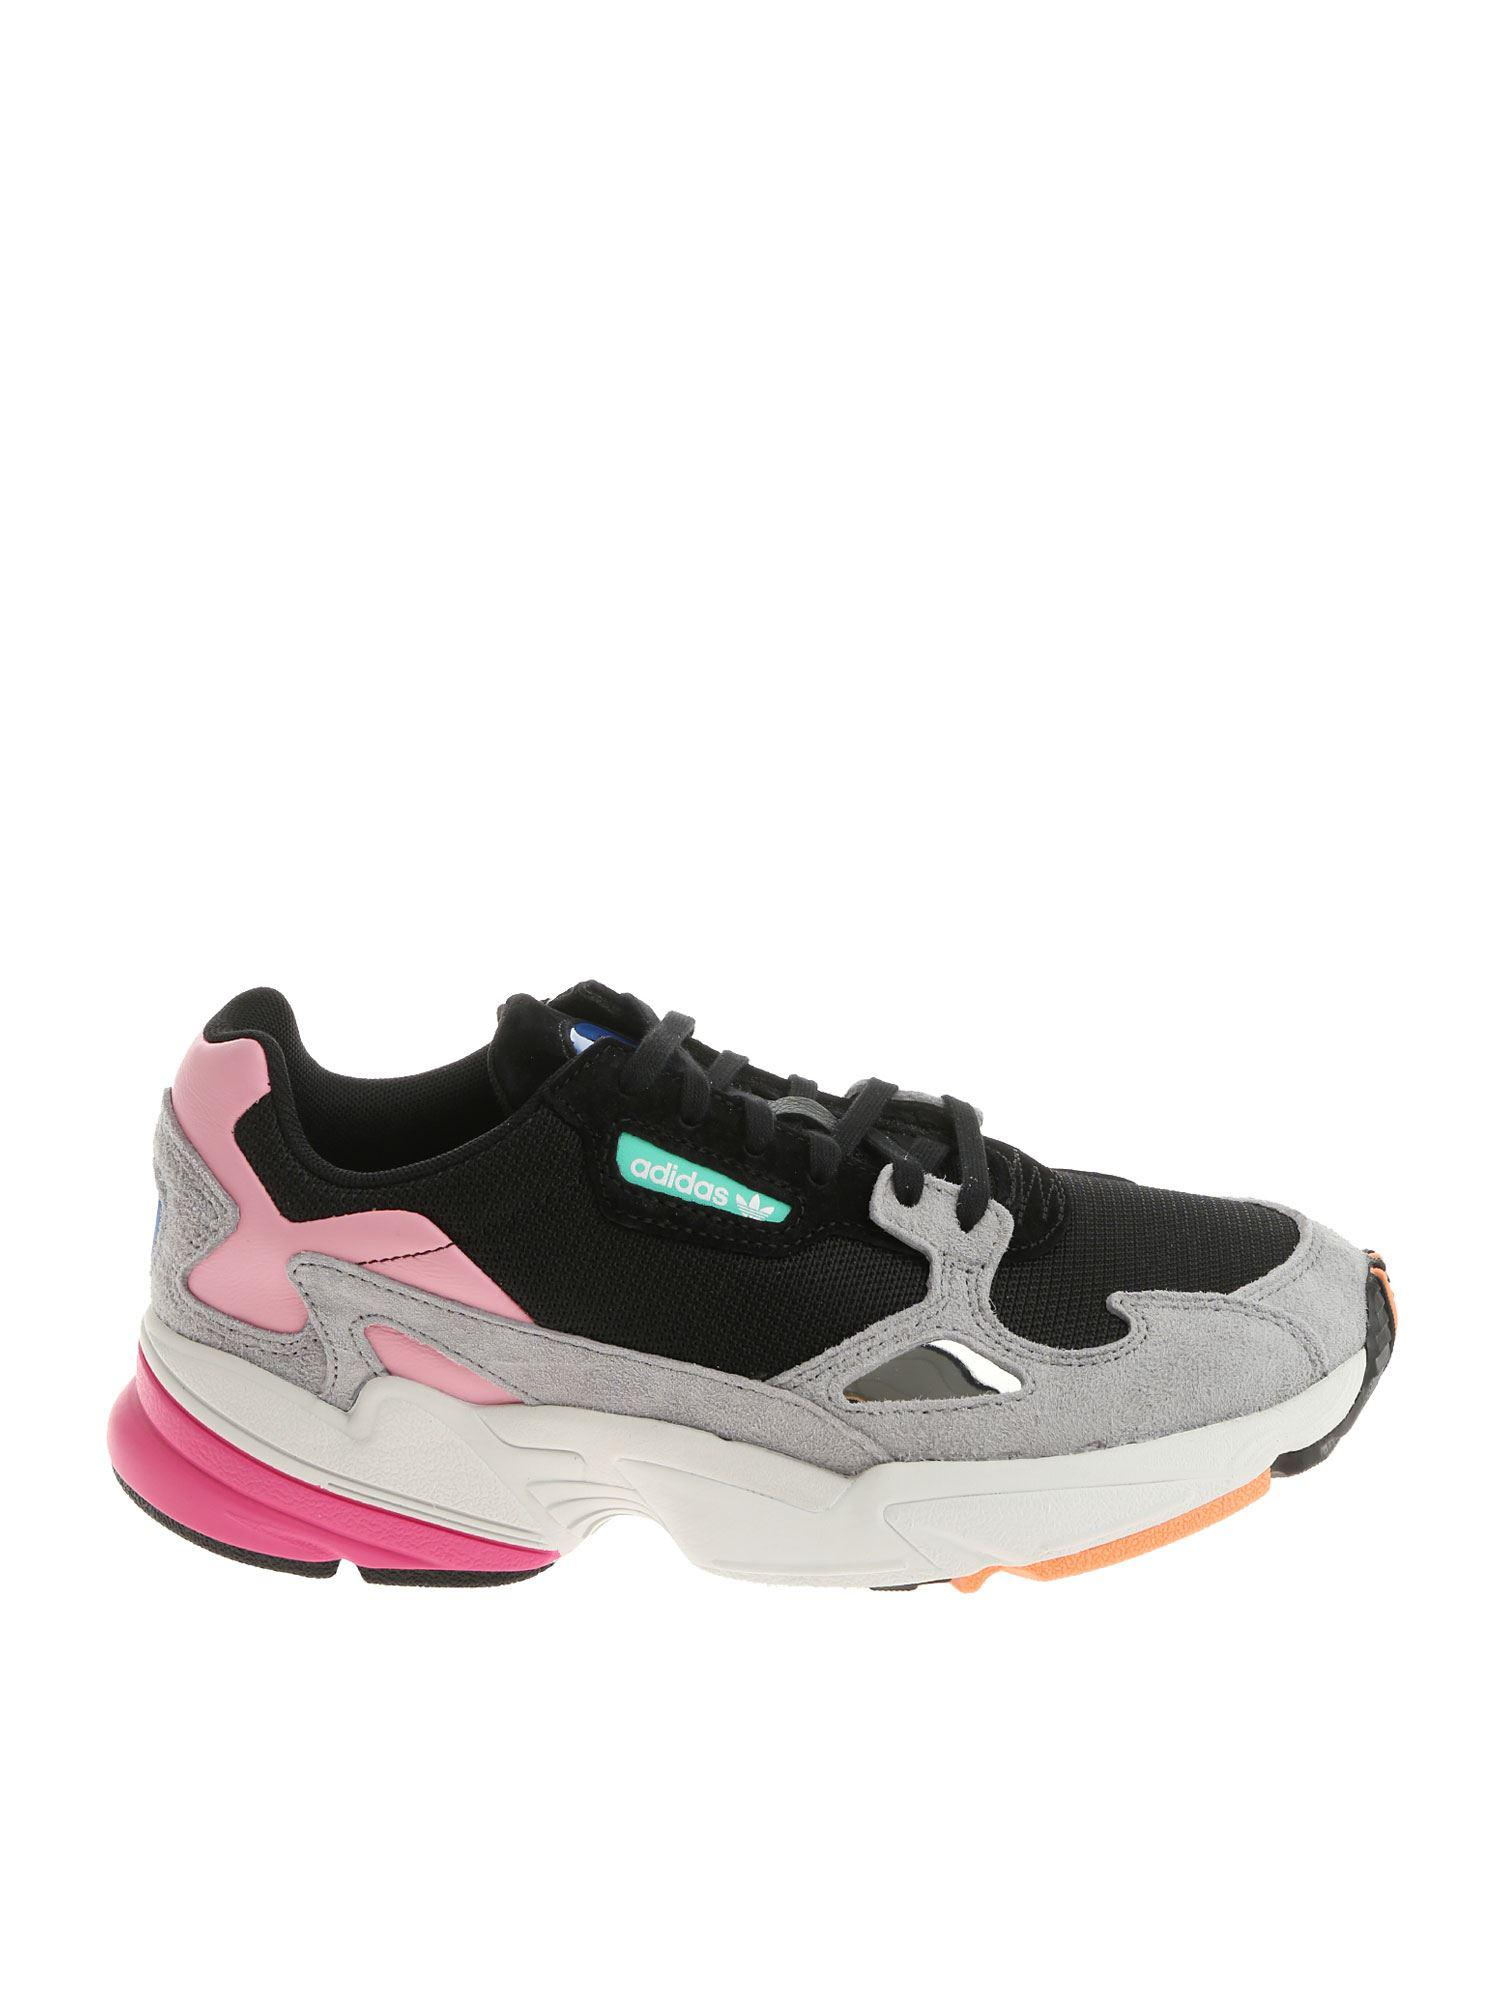 low priced 45c3d d5022 adidas Originals Black Pink And Grey Falcon W Sneakers in Black - Lyst